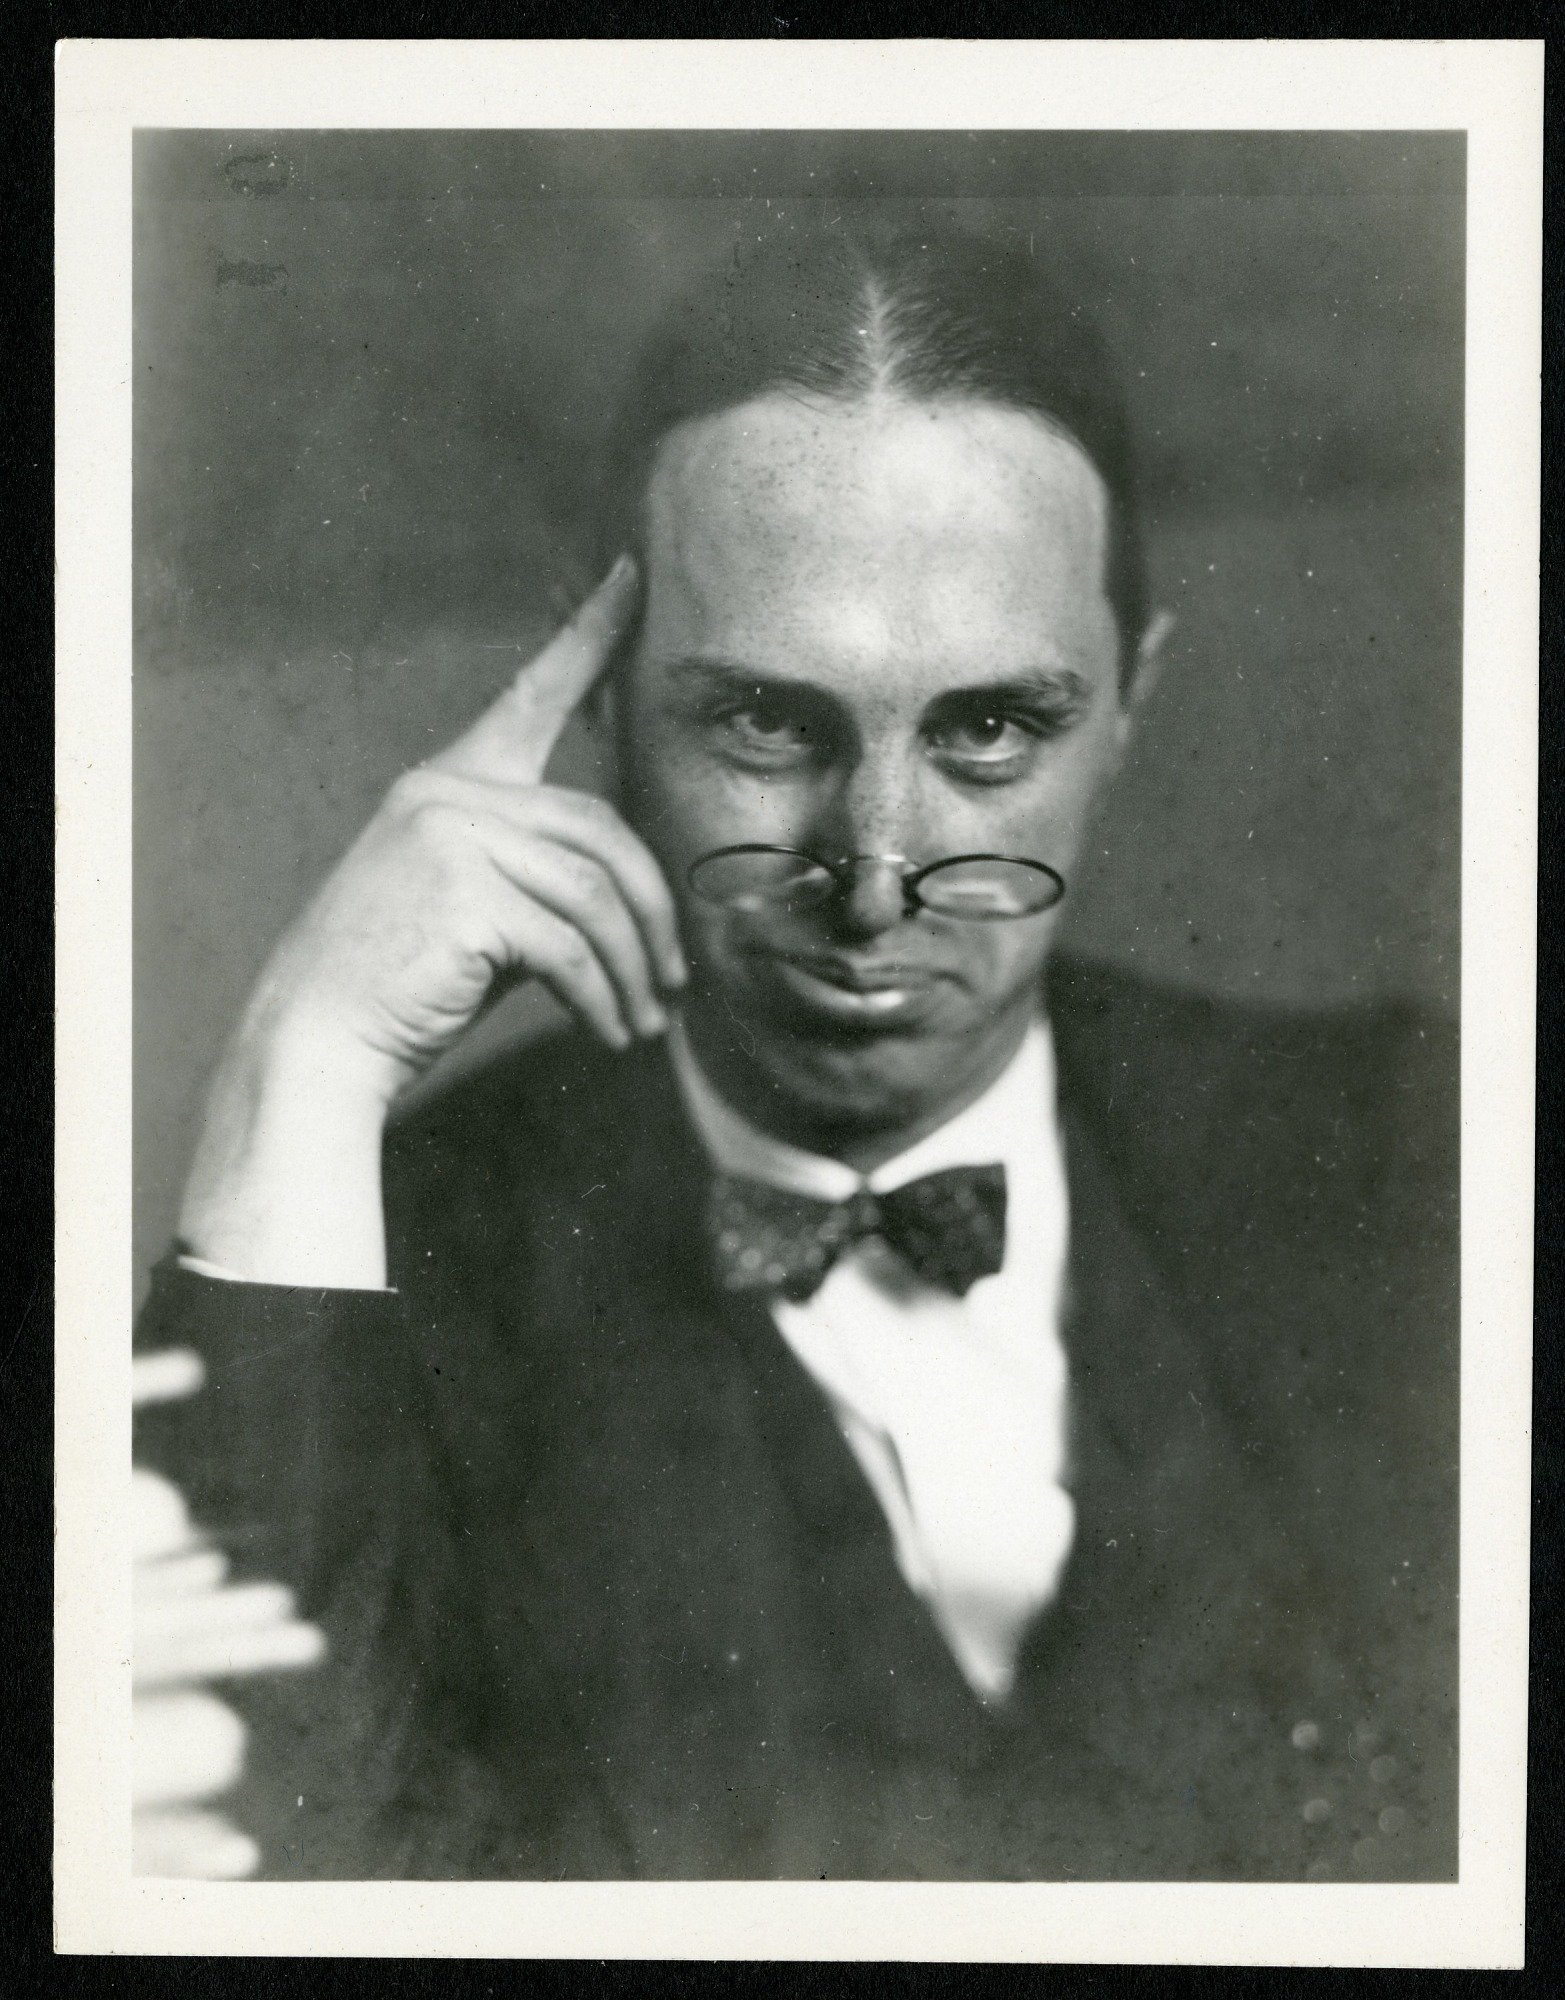 James Stokley (1900-1989), 1920, Smithsonian Institution Archives, SIA RU007091 [SIA2015-003196].